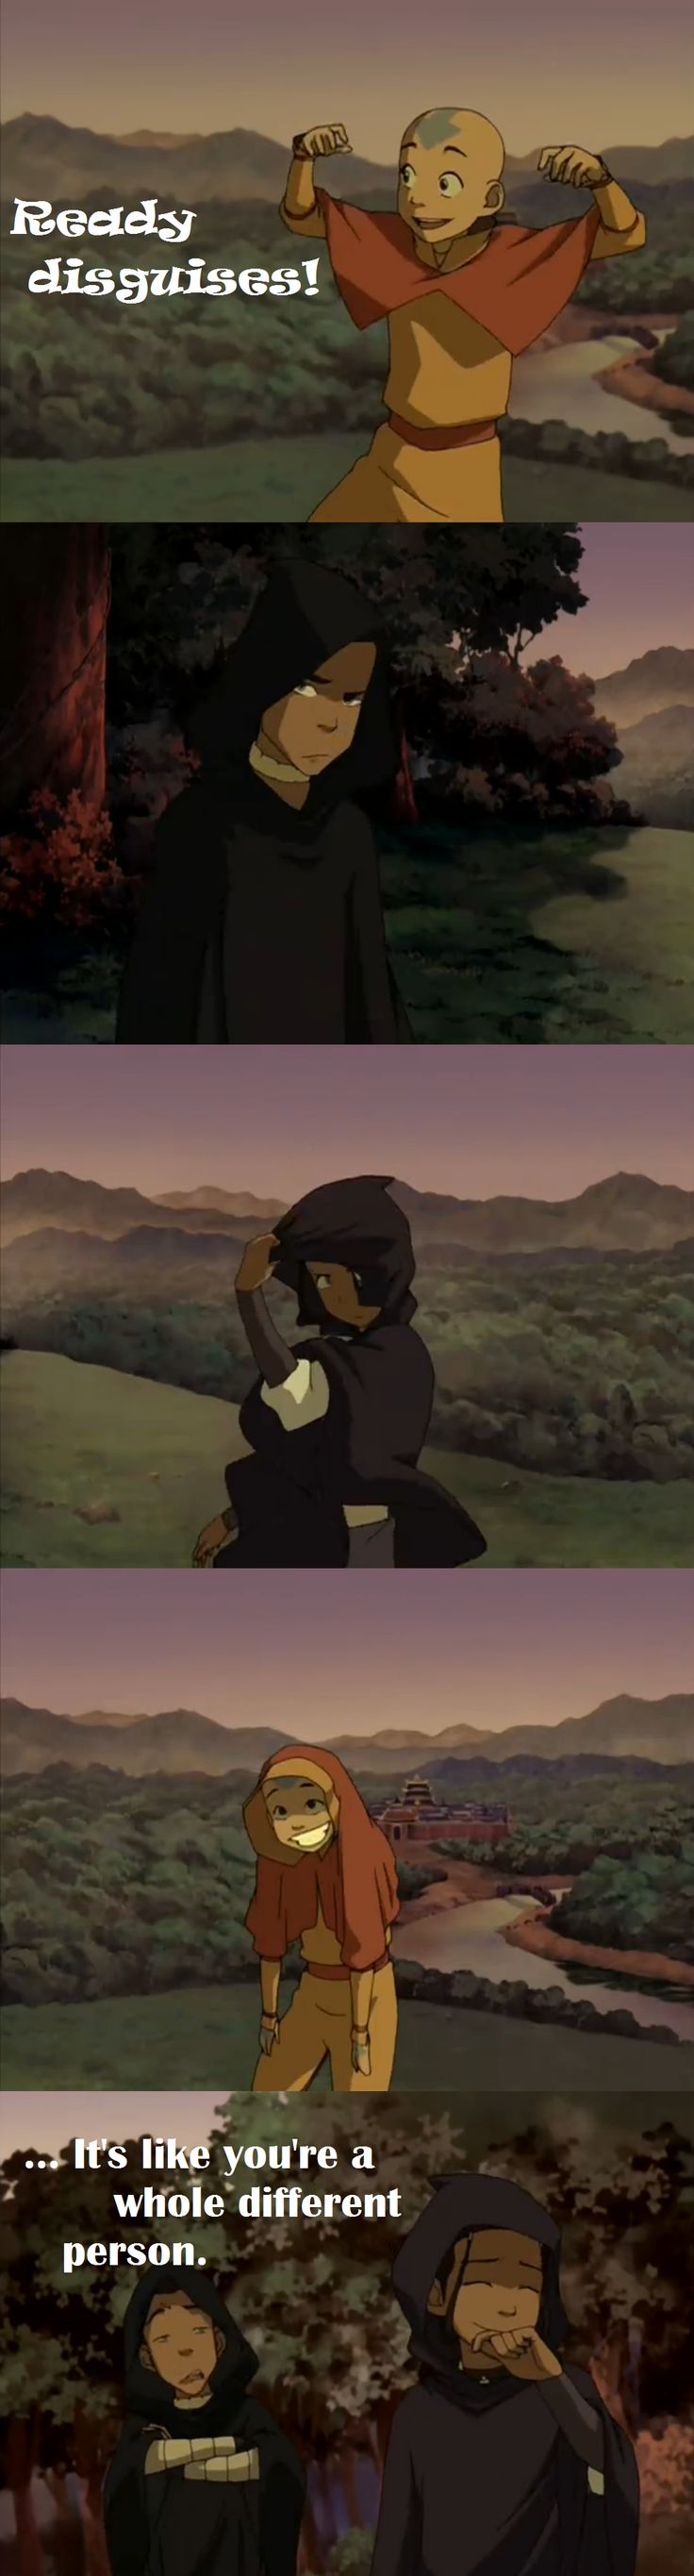 With all the undercover travel they had to do, it's really a surprise that Aang never had a suitable disguise handy.